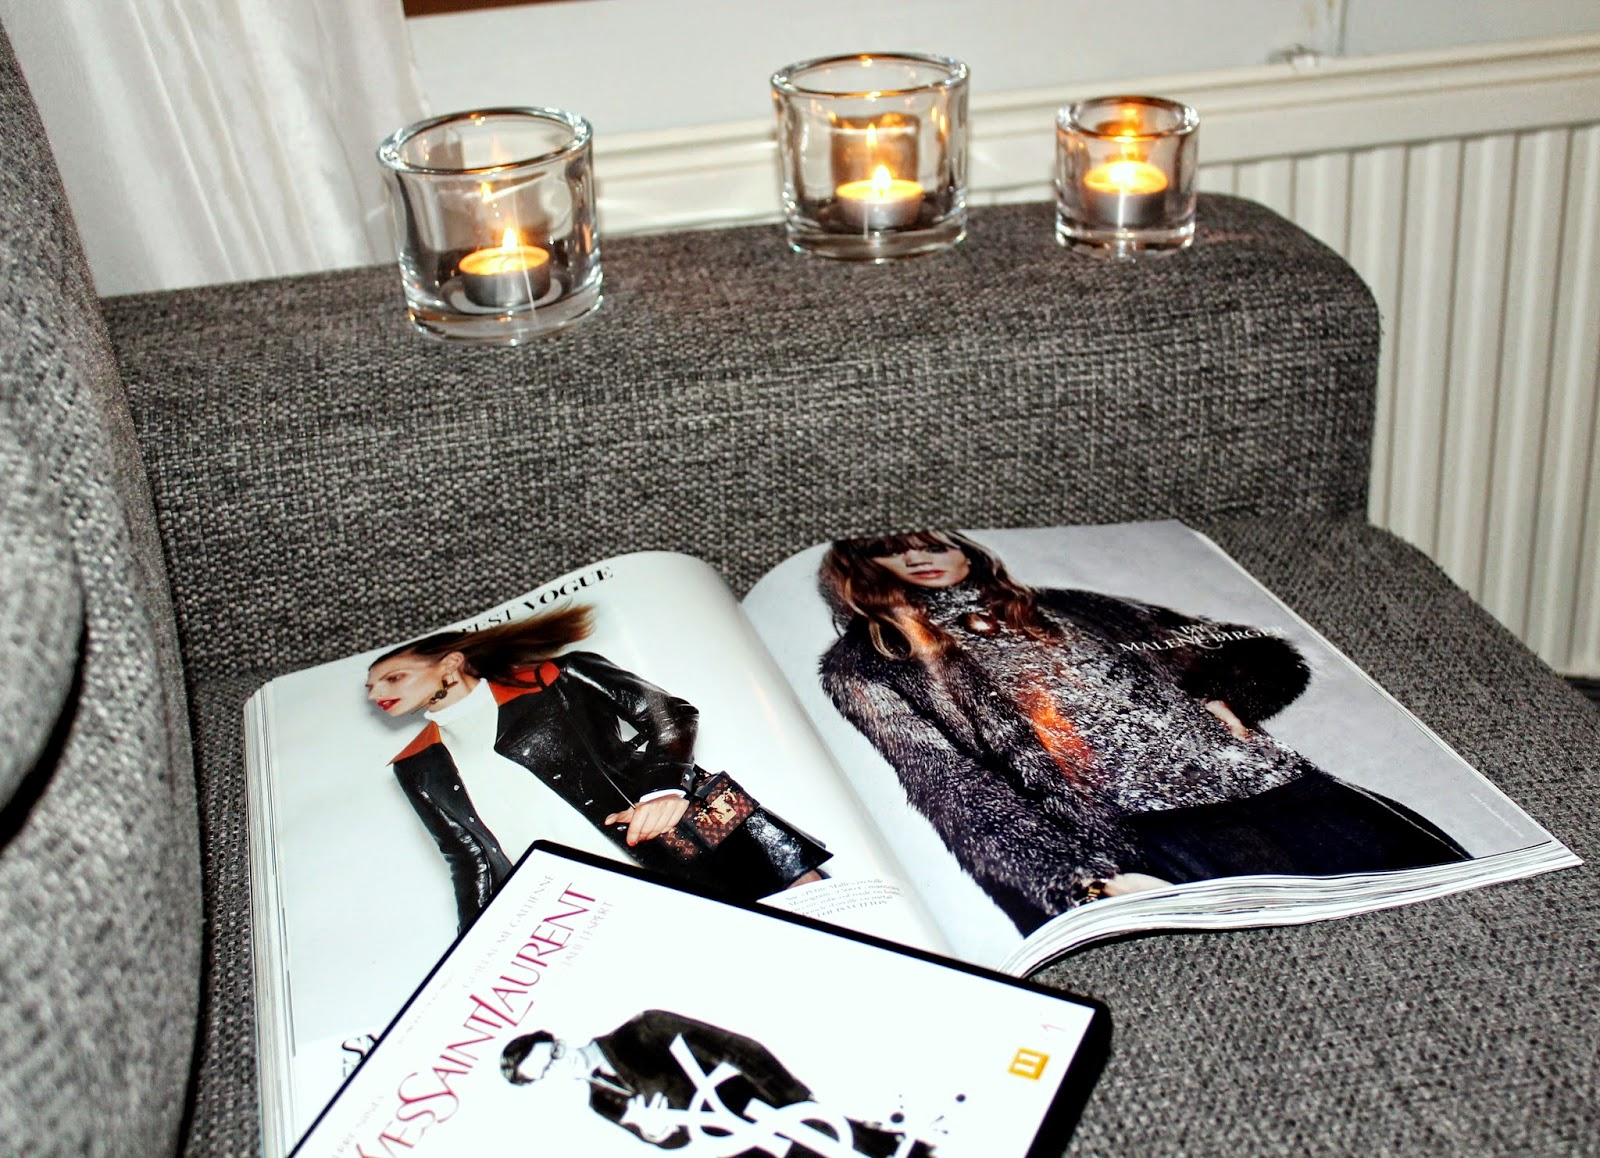 girls movie night, me-time, reading magazines